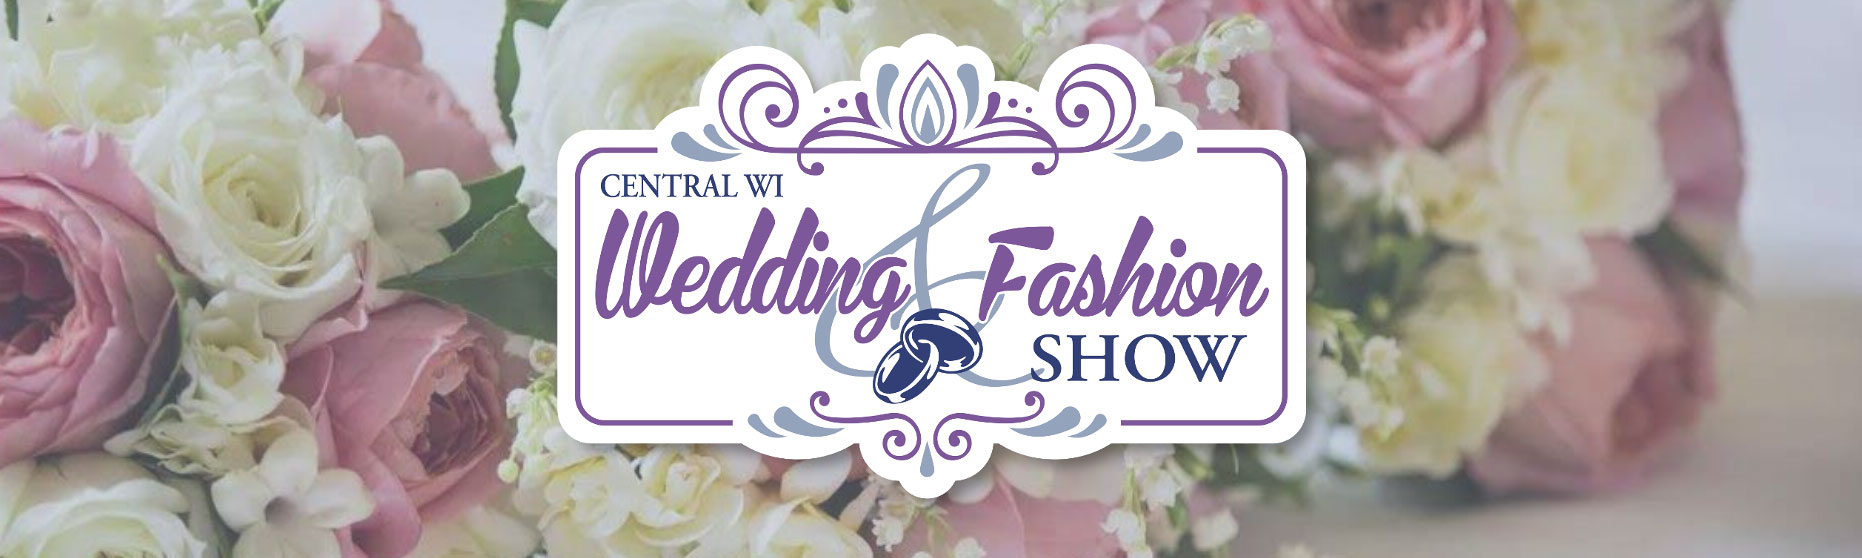 CONTEST: Central Wisconsin Wedding & Fashion Show